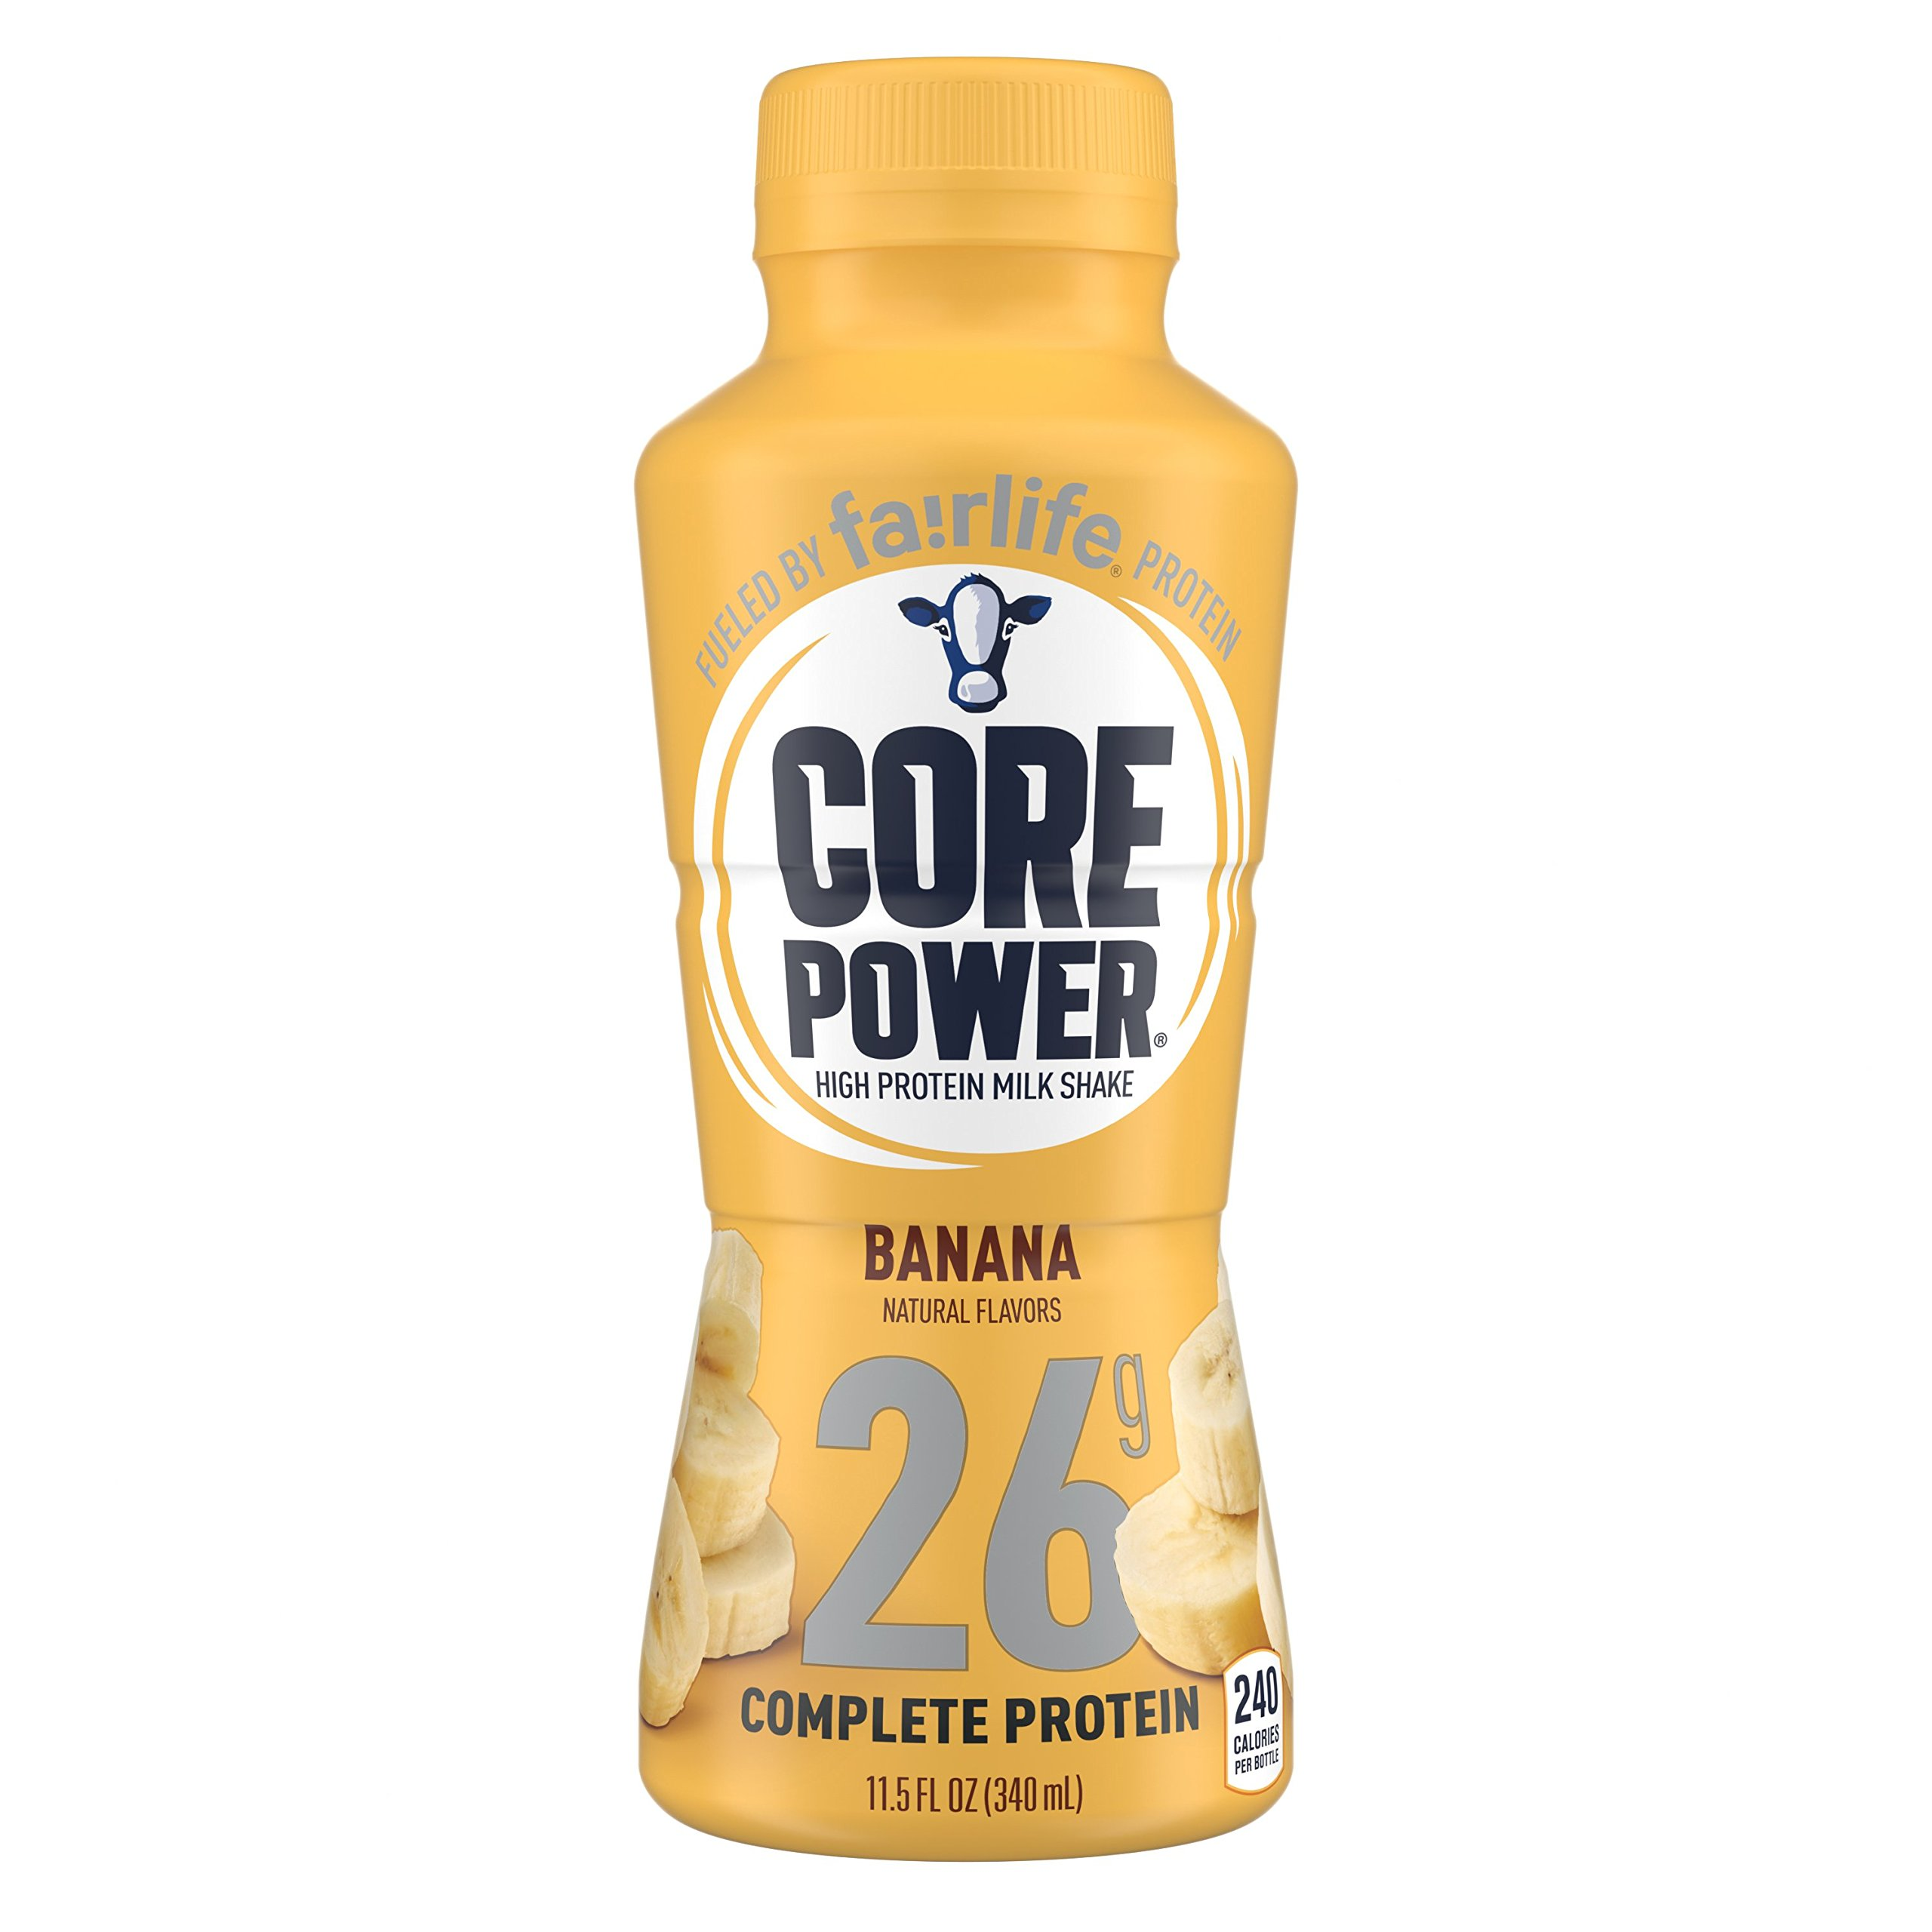 fairlife Core Power High Protein (26g) Milk Shake, Banana (Packaging May Vary), 11.5-ounce bottles,12 Count